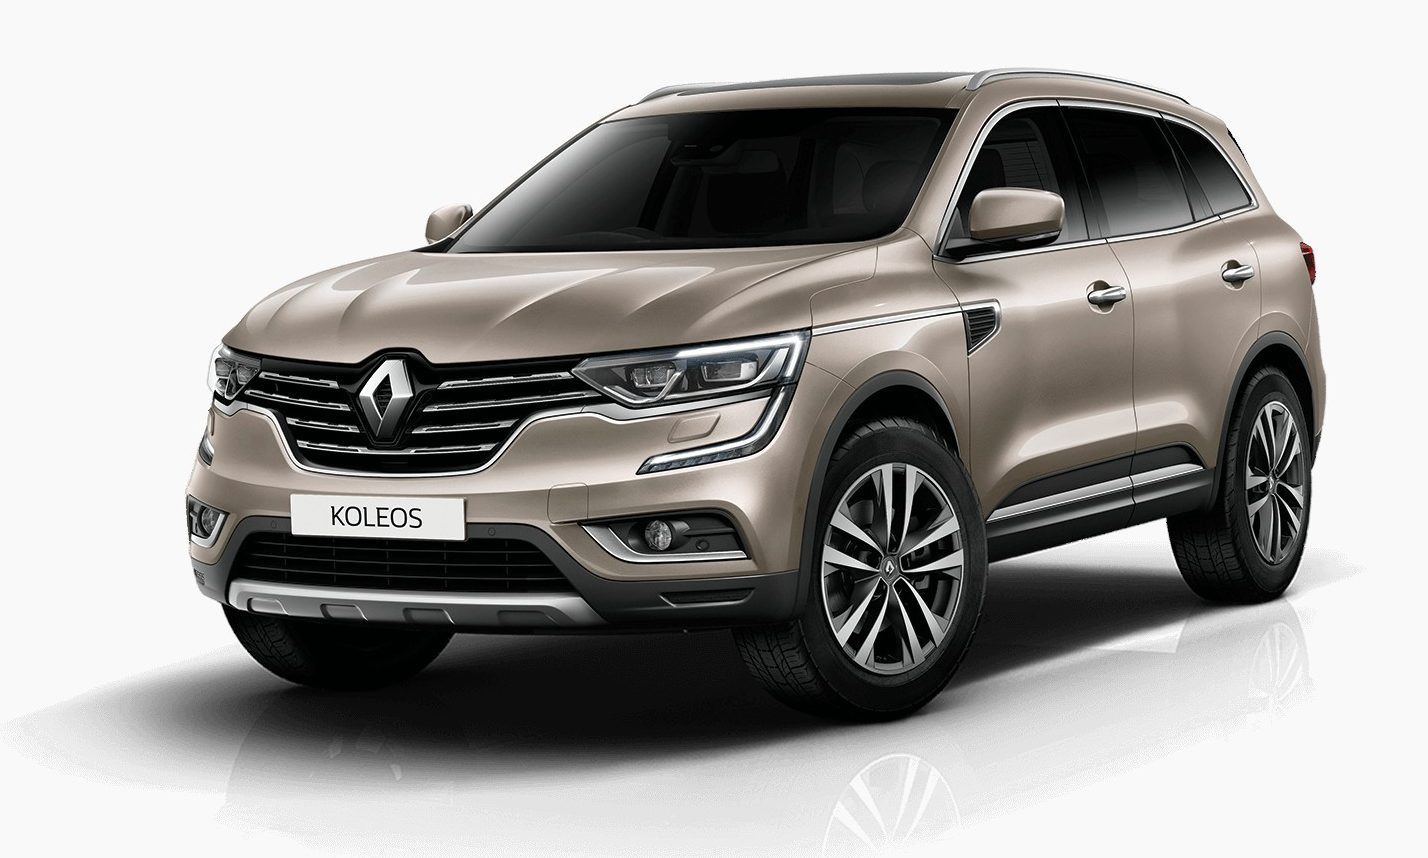 2018 renault koleos pe car 2018 renault koleos car price engine full technical. Black Bedroom Furniture Sets. Home Design Ideas